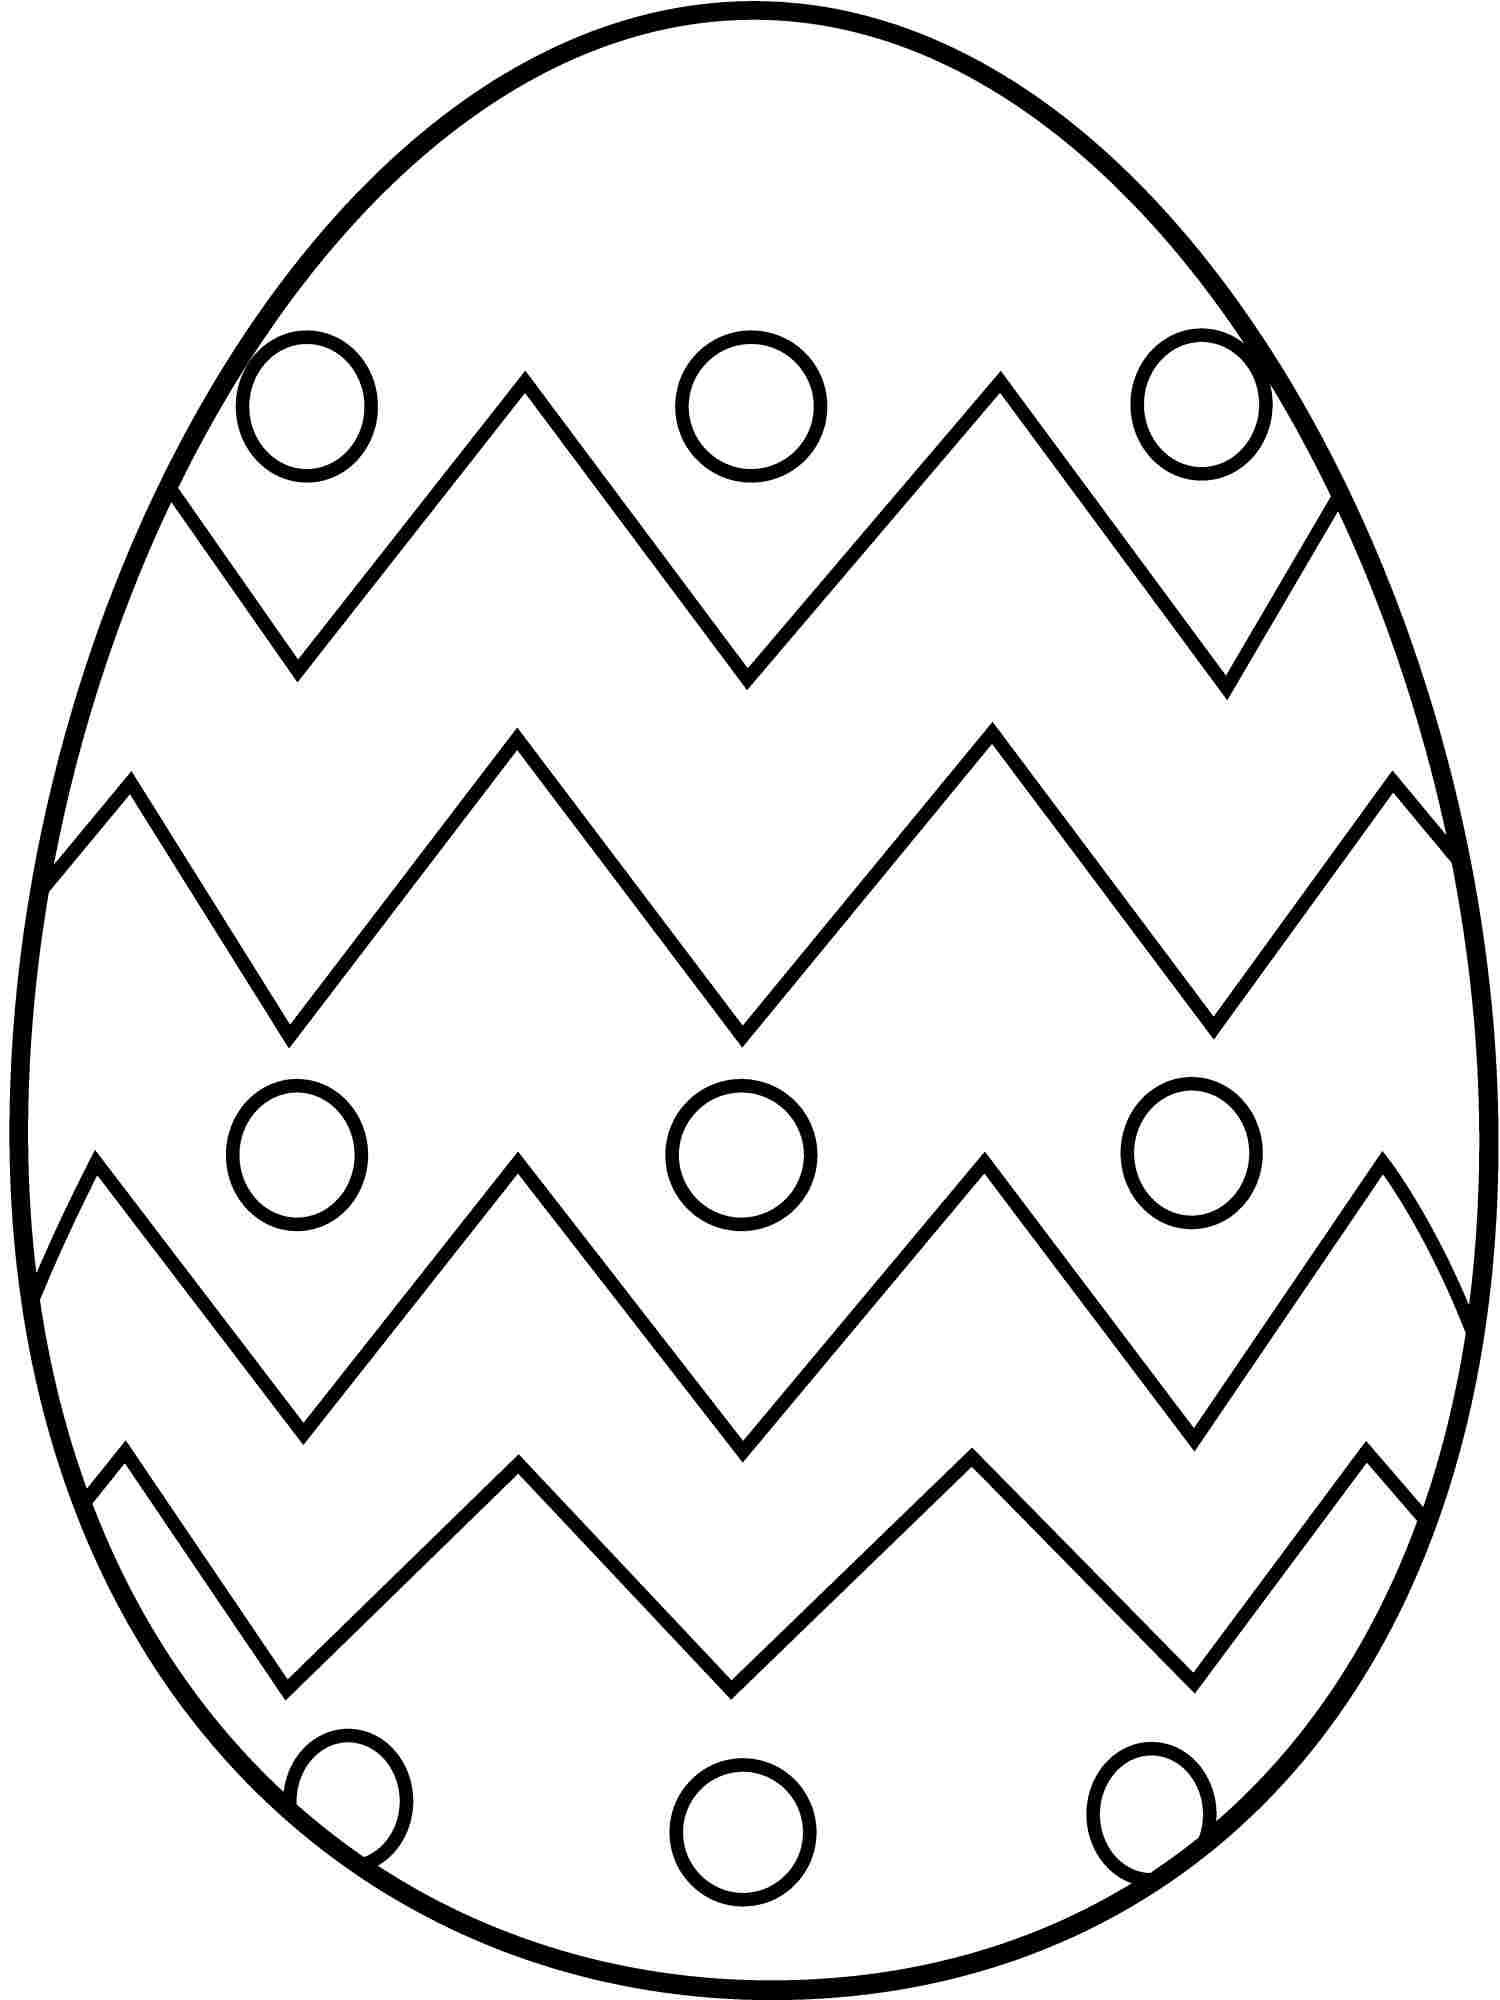 If Anyone Like To Acquire The Easter Egg Colouring Sheets